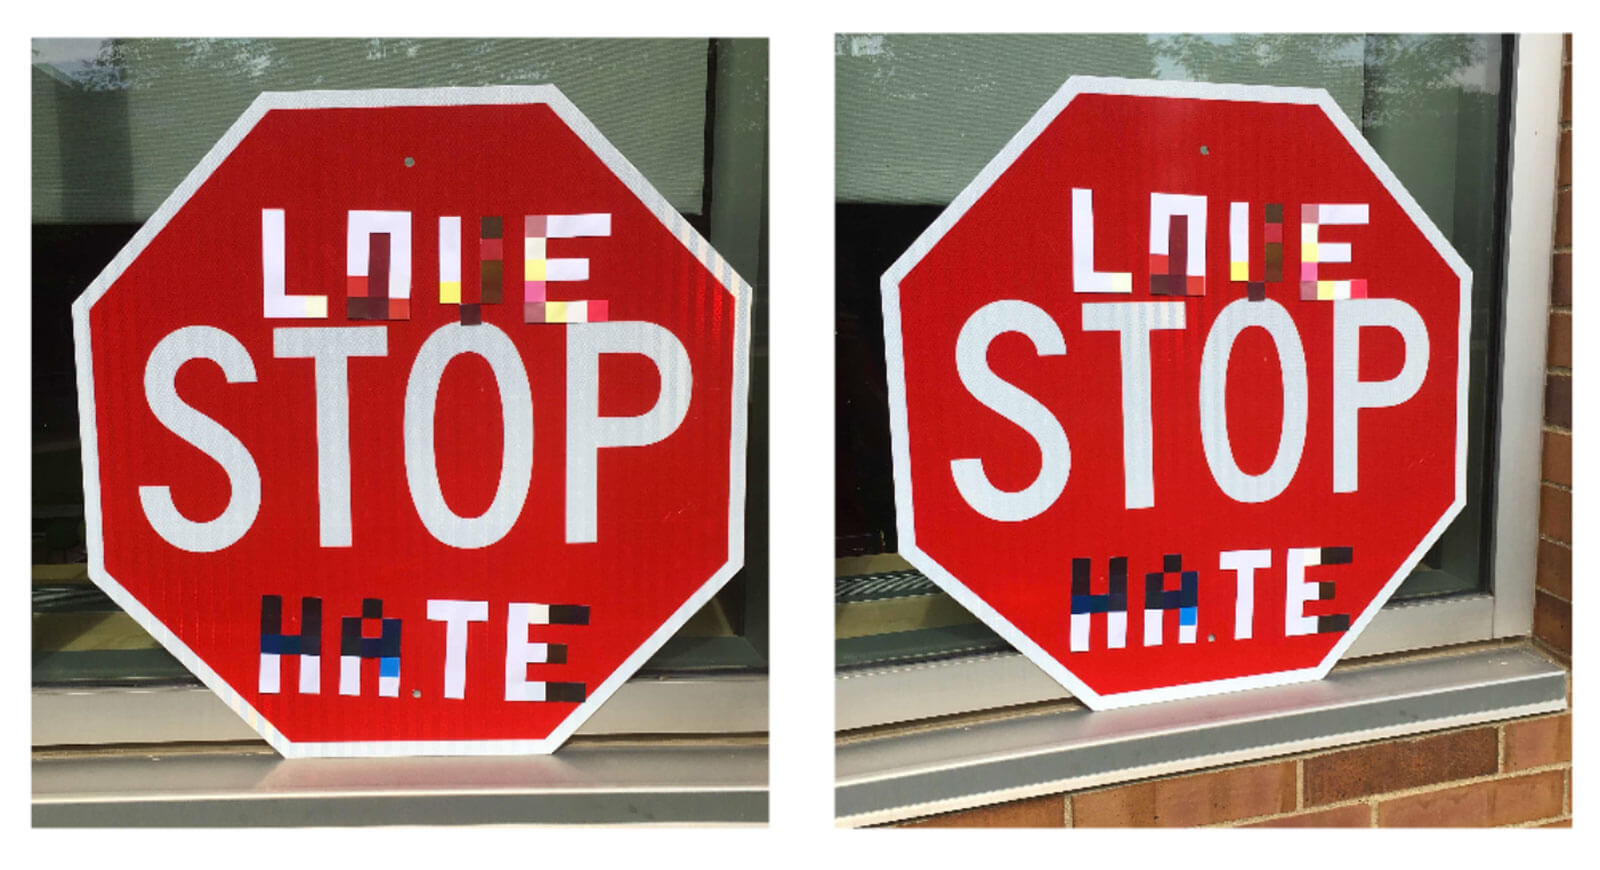 Researchers show how to confuse self-driving cars by adding stickers to street signs